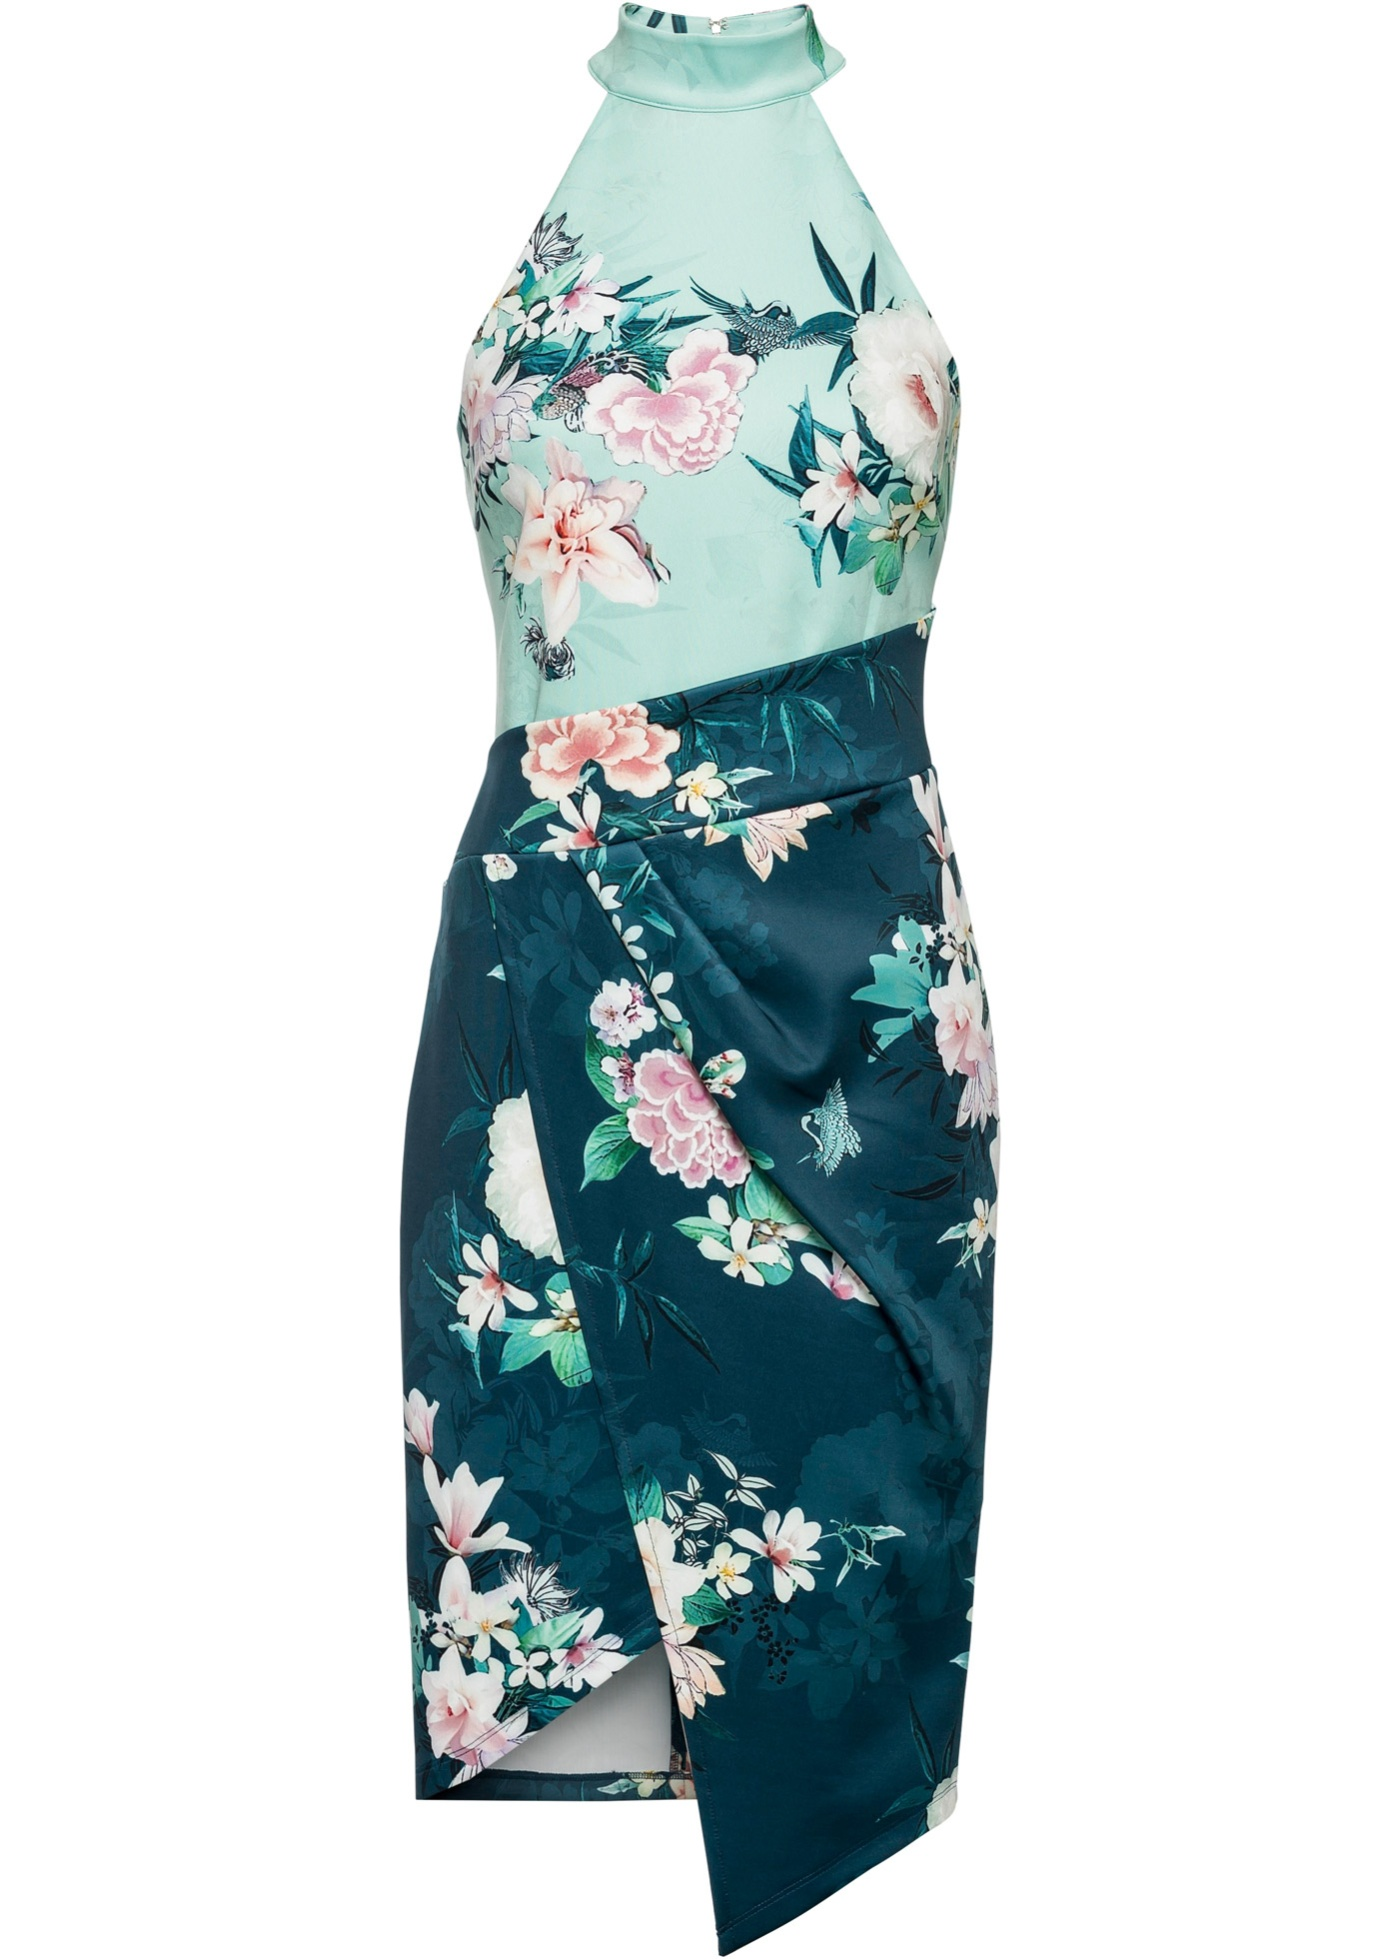 Abito a fiori con scollo all''americana (Blu) - BODYFLIRT boutique